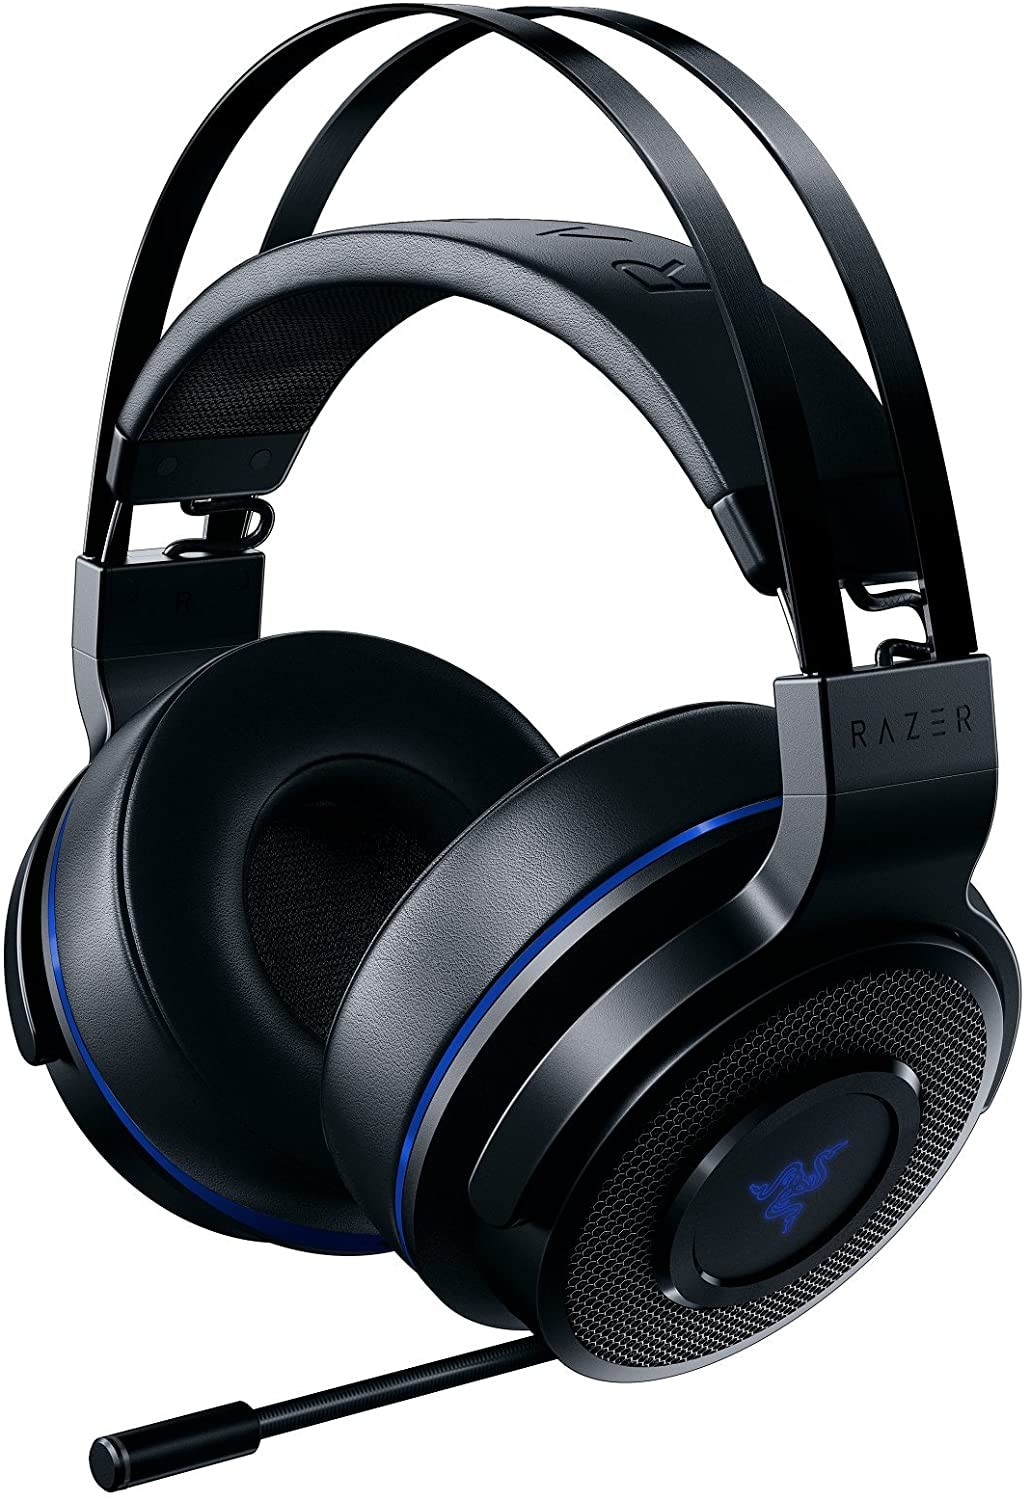 Razer Thresher 7.1 for PlayStation - Wireless Gaming Headset for PS4, PS5 and PC Wireless Headphones, Dolby 7.1 Black - 1